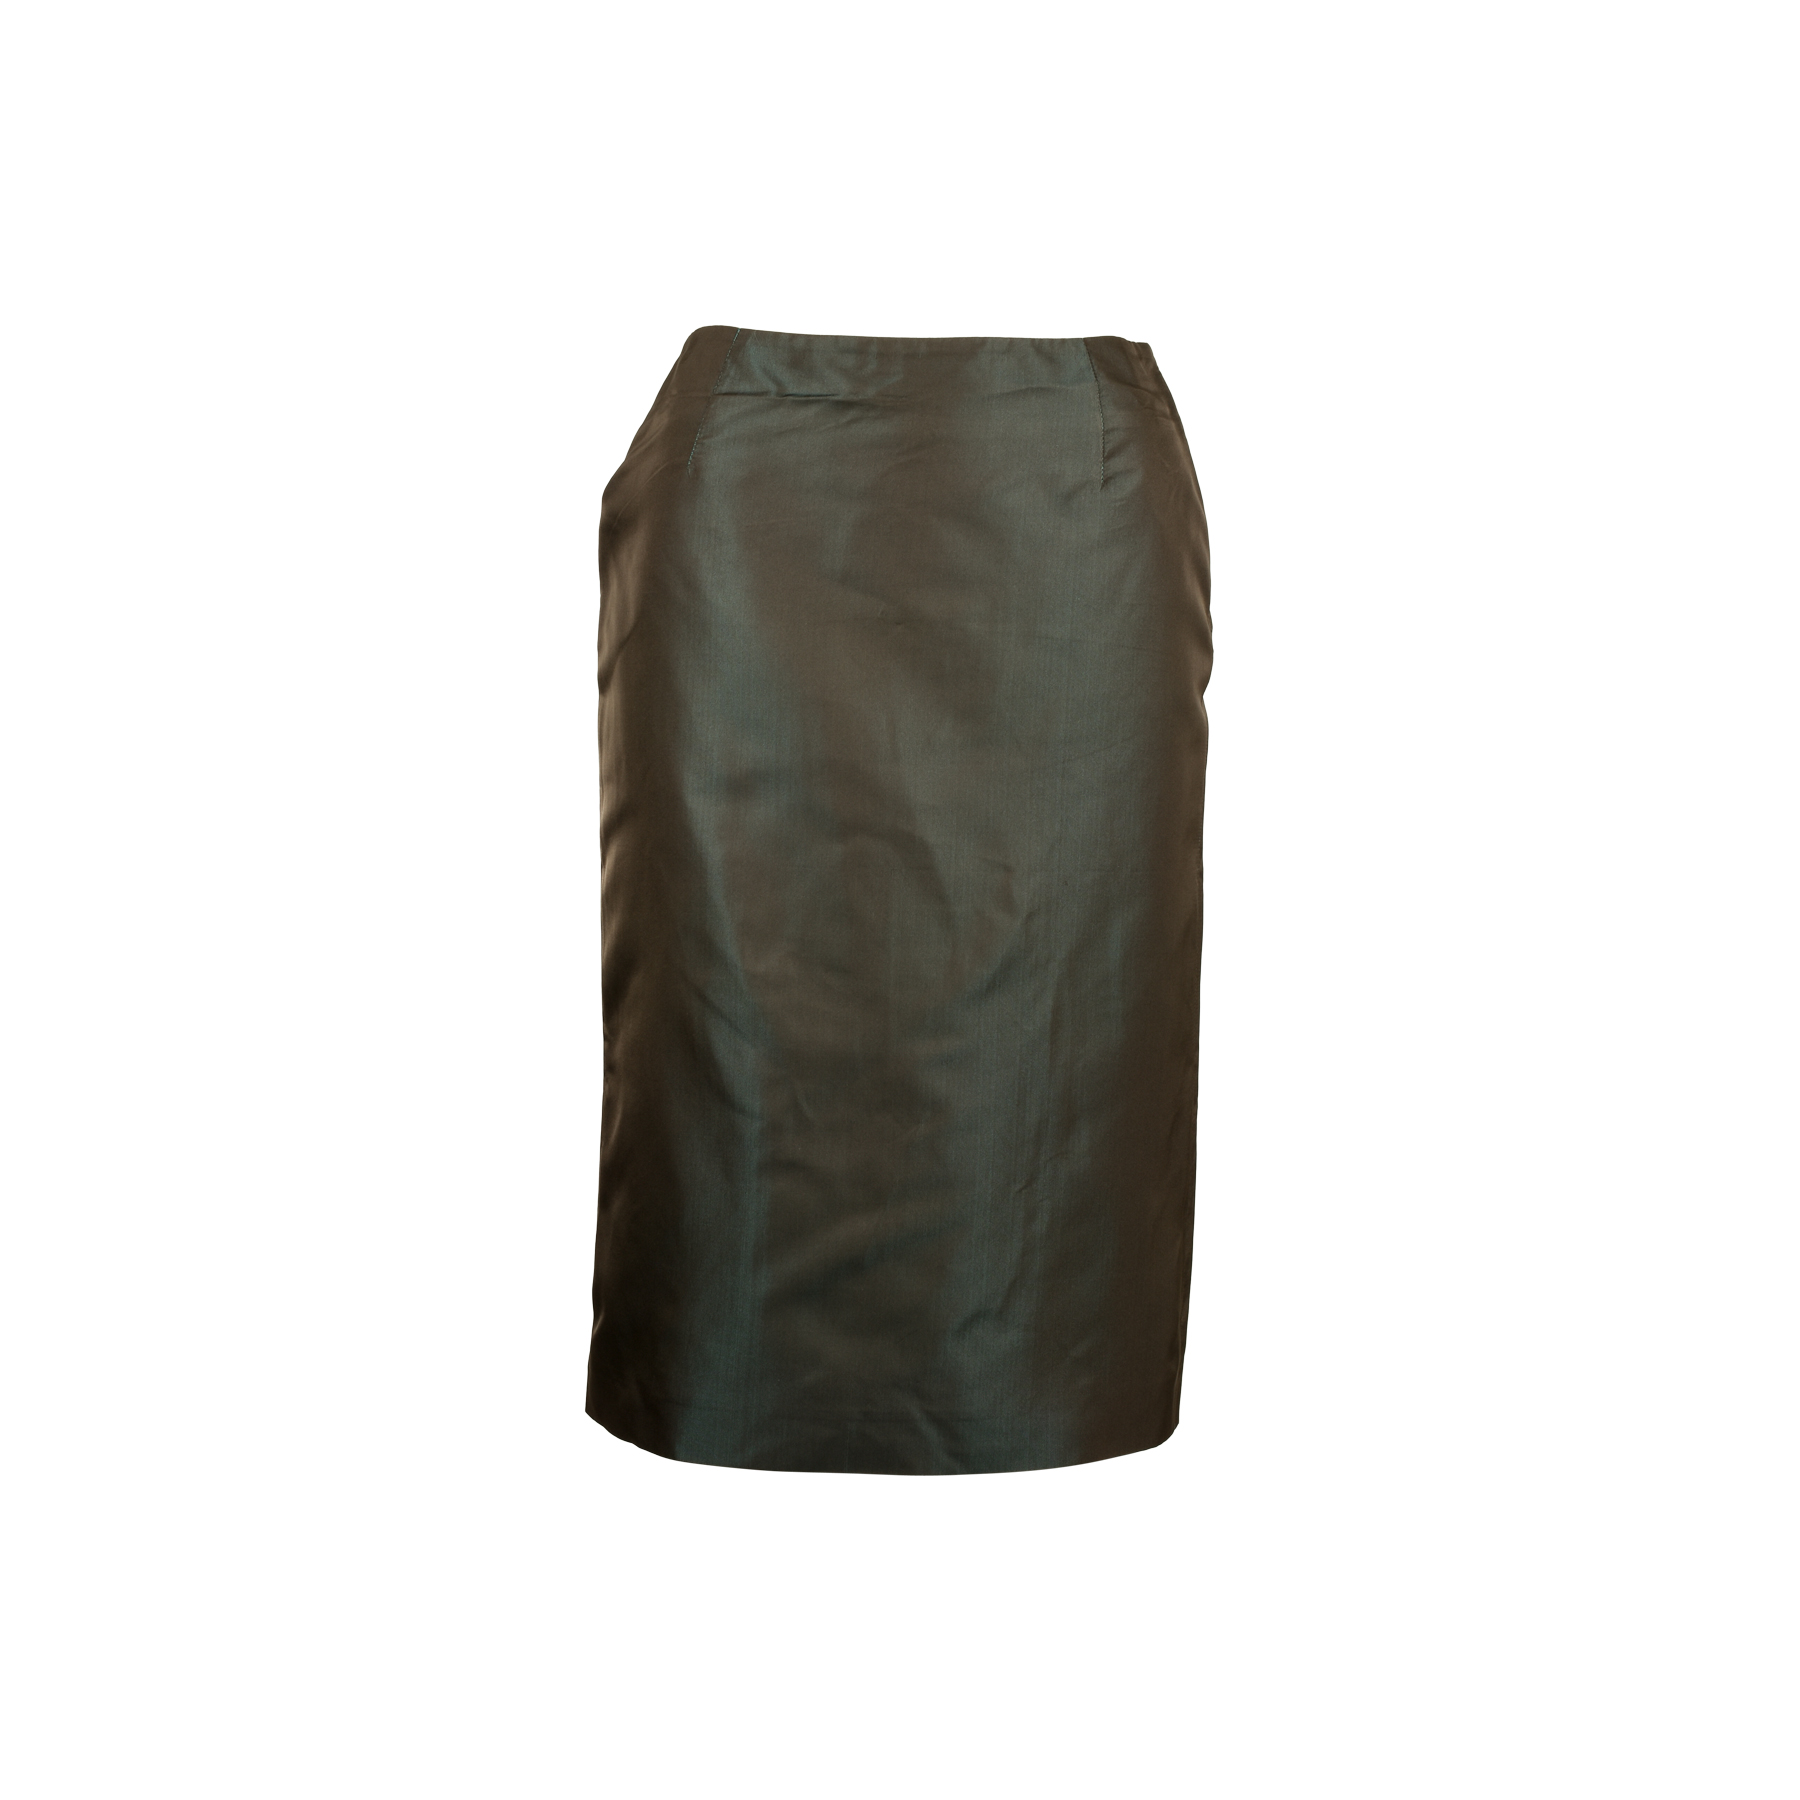 8d072da554d4 Authentic Second Hand Calvin Klein Pencil Skirt (PSS-071-00197) - THE FIFTH  COLLECTION